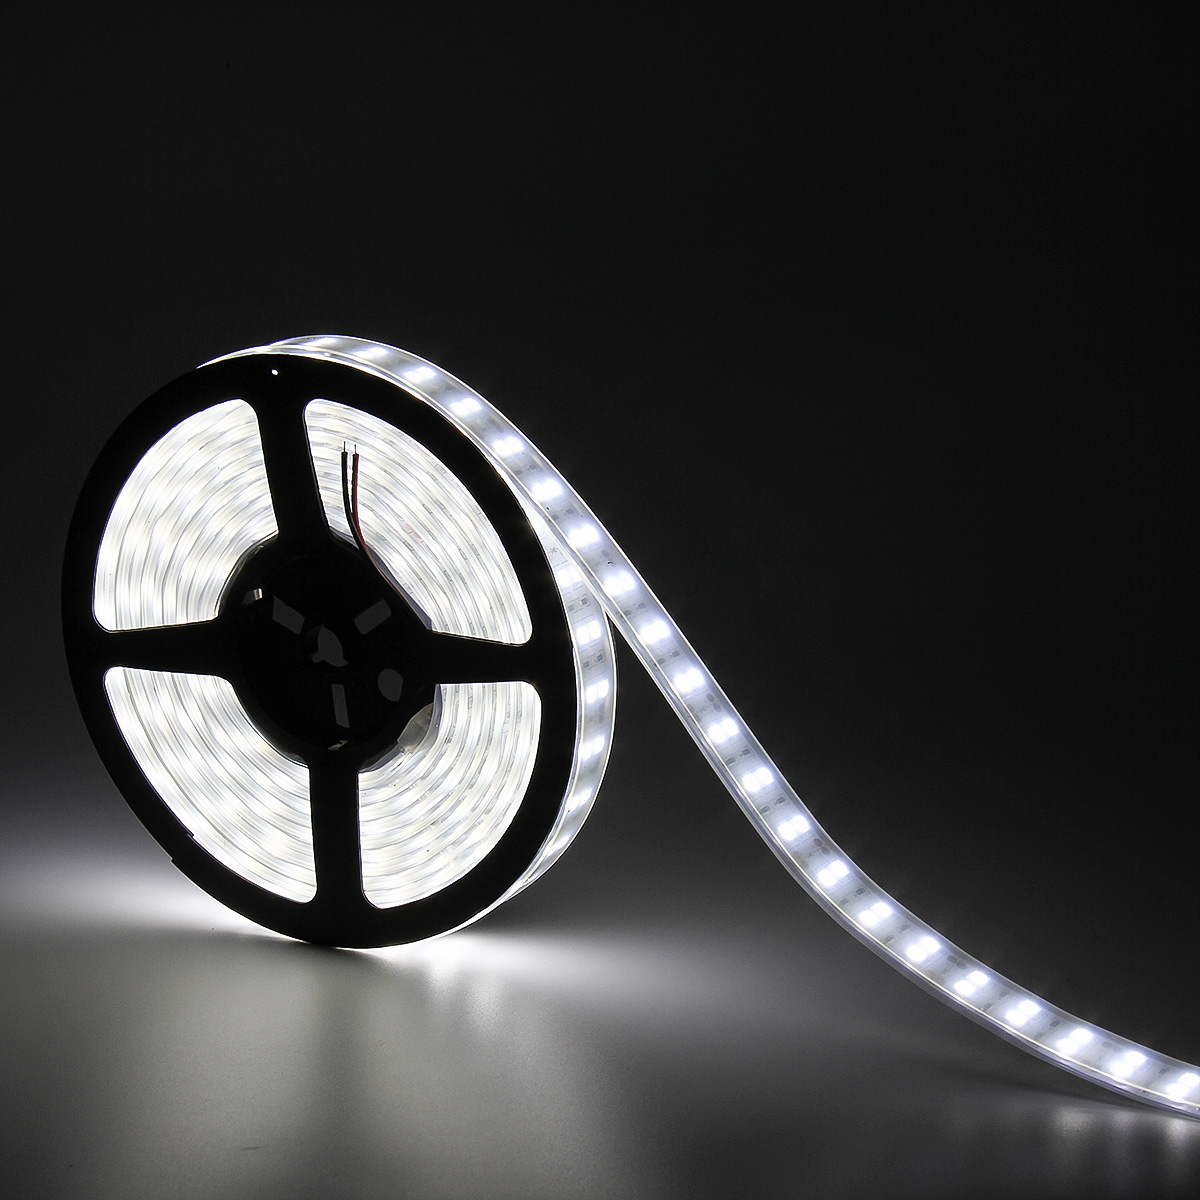 SUPERNIGHT Cool White 5m IP67 Waterproof Flexible LED Strip Light Lamp 600 LEDs SMD 5050 Indoor Outdoor Decorative LED Tube Lighting DC 12V